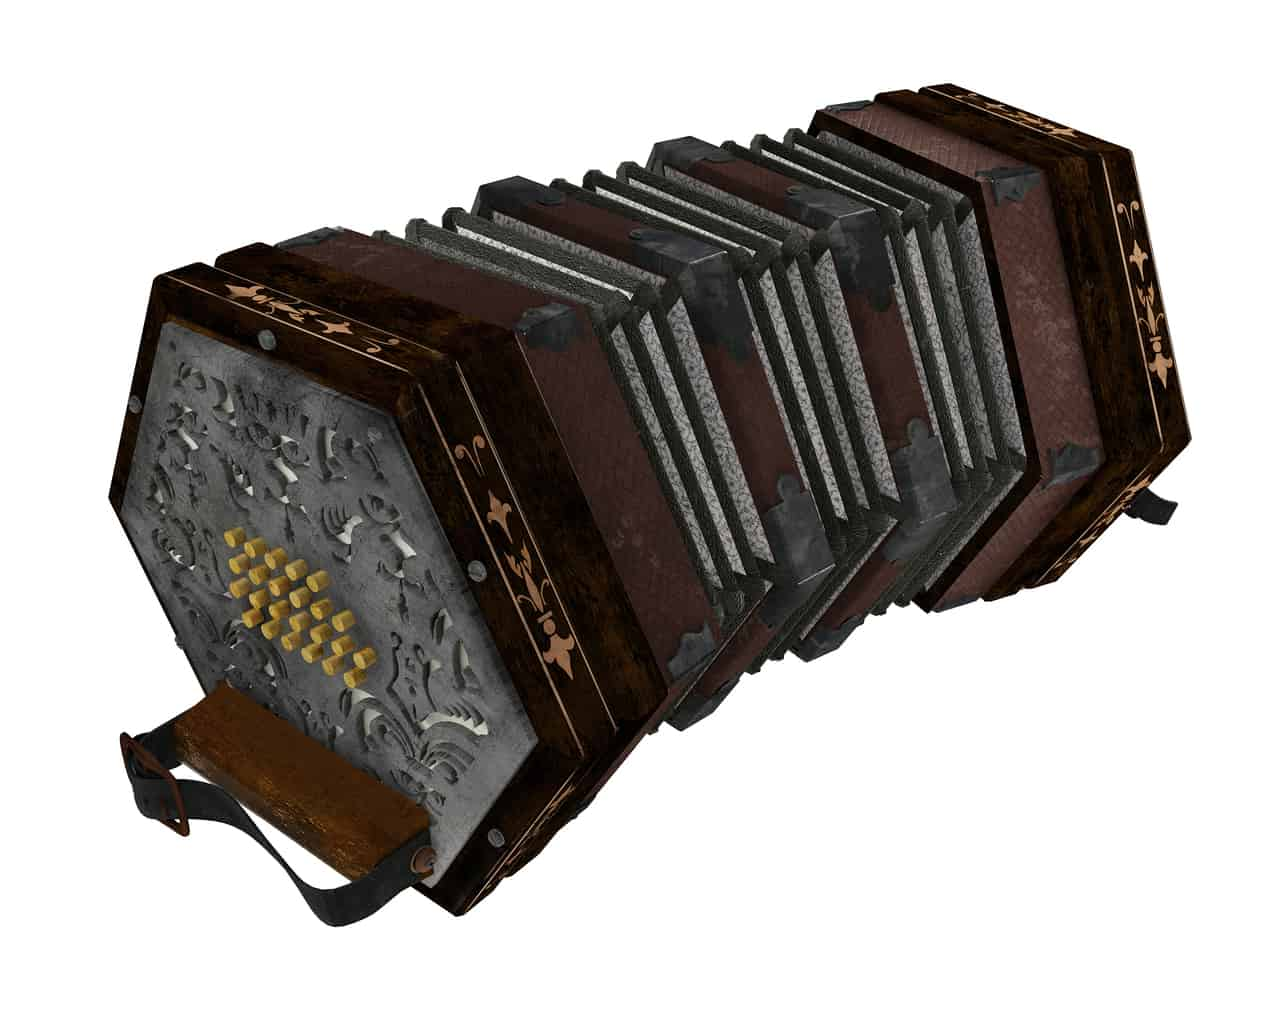 concertina isolated at the white background.Music instrument